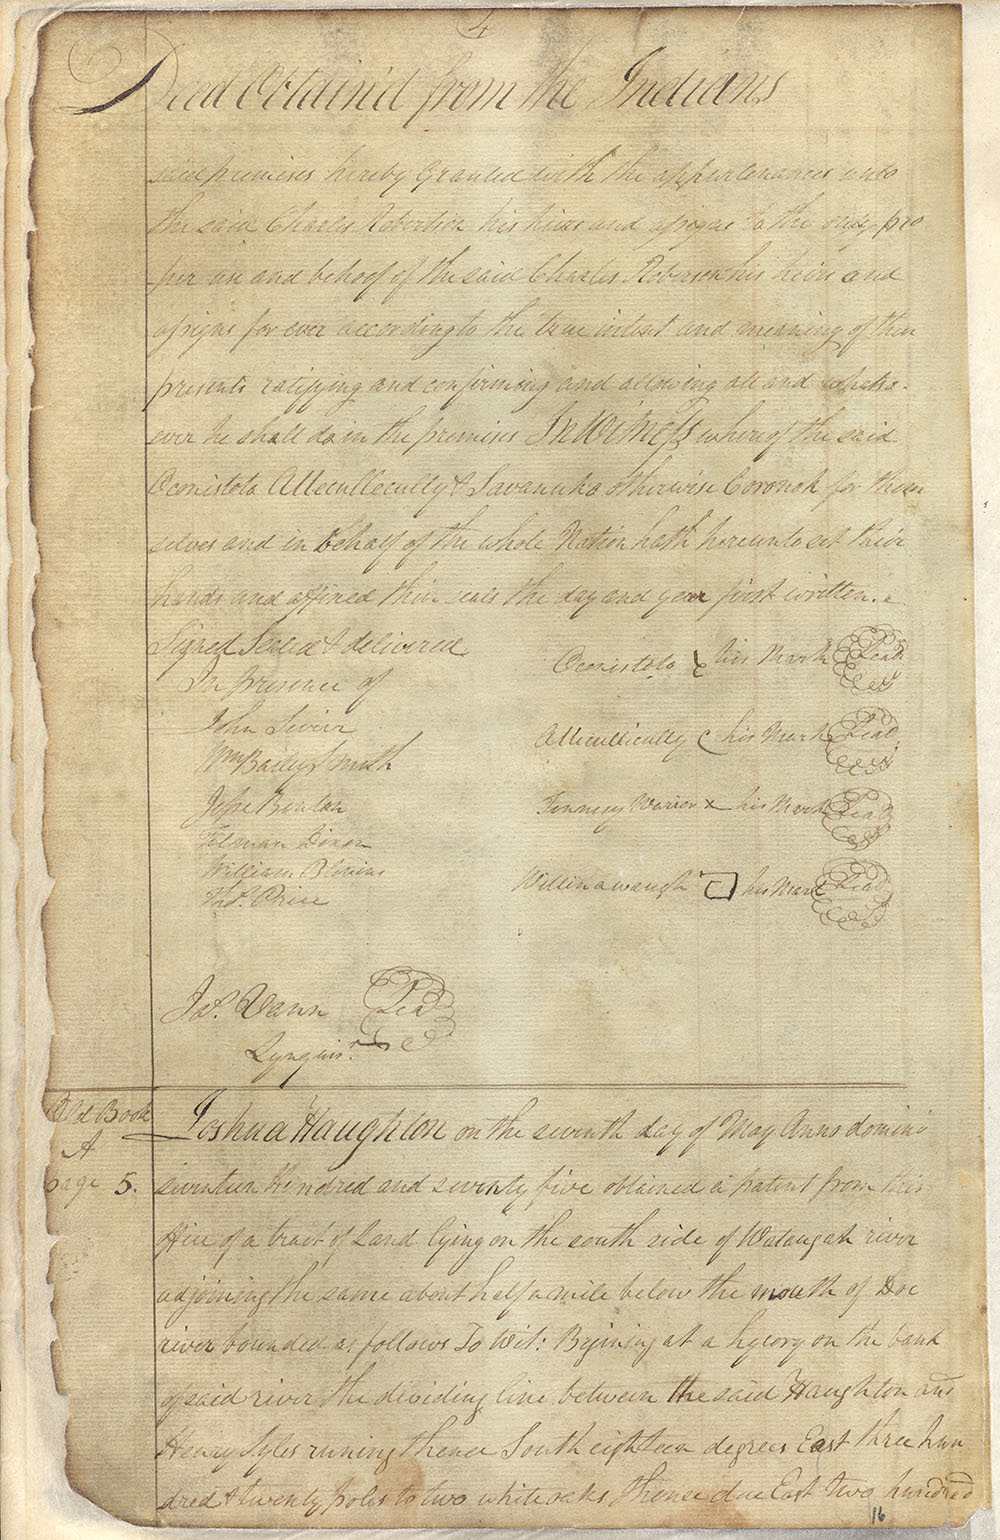 Great Cherokee leaders such as Oconostota and Attakullakulla signed the Watauga Purchase.